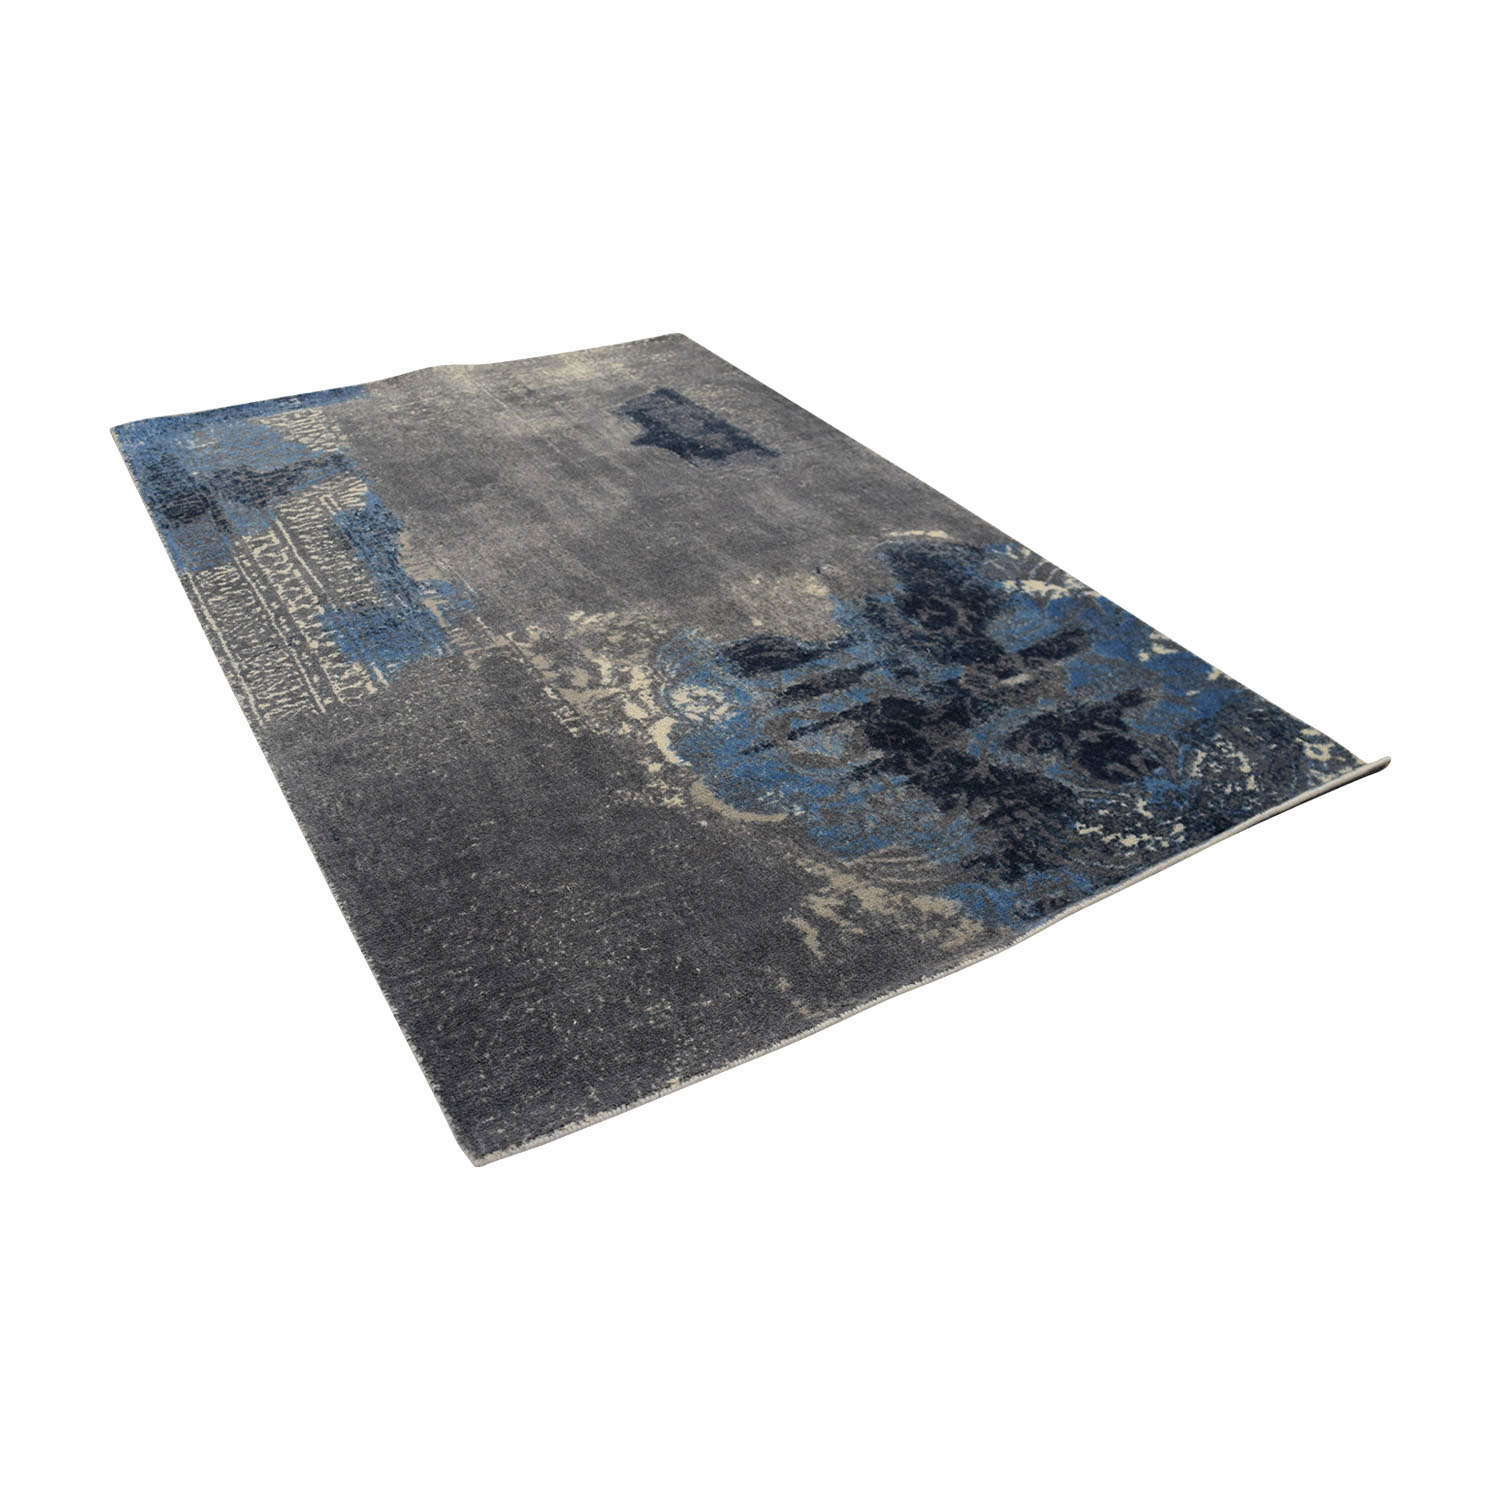 Obeetee Blue Grey Hand Tufted Wool Rug / Rugs